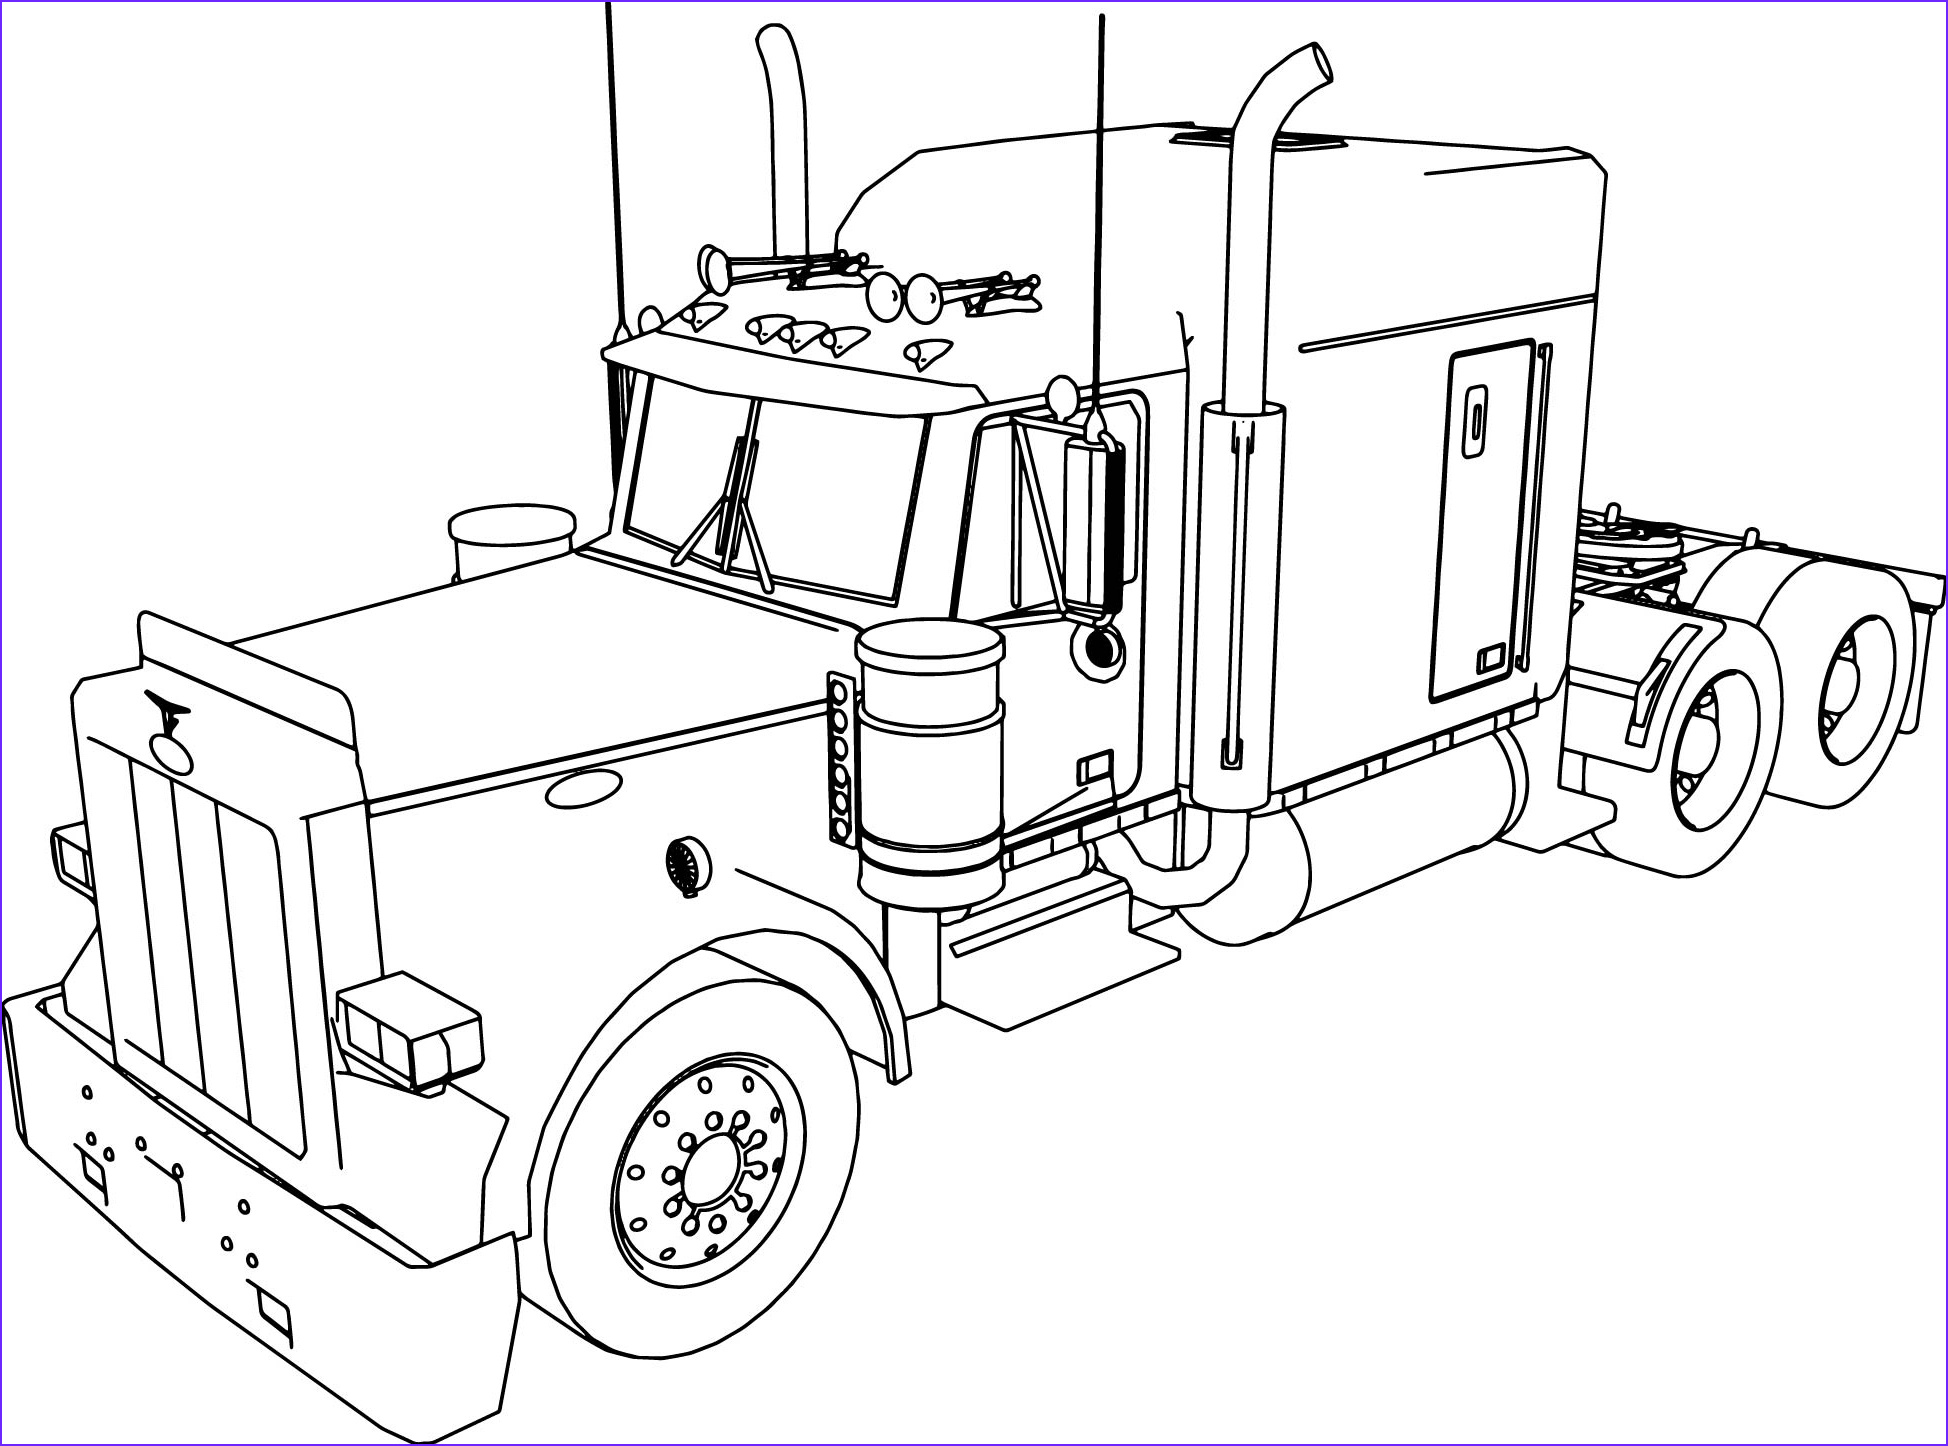 Semi Truck Outline Drawing at GetDrawings